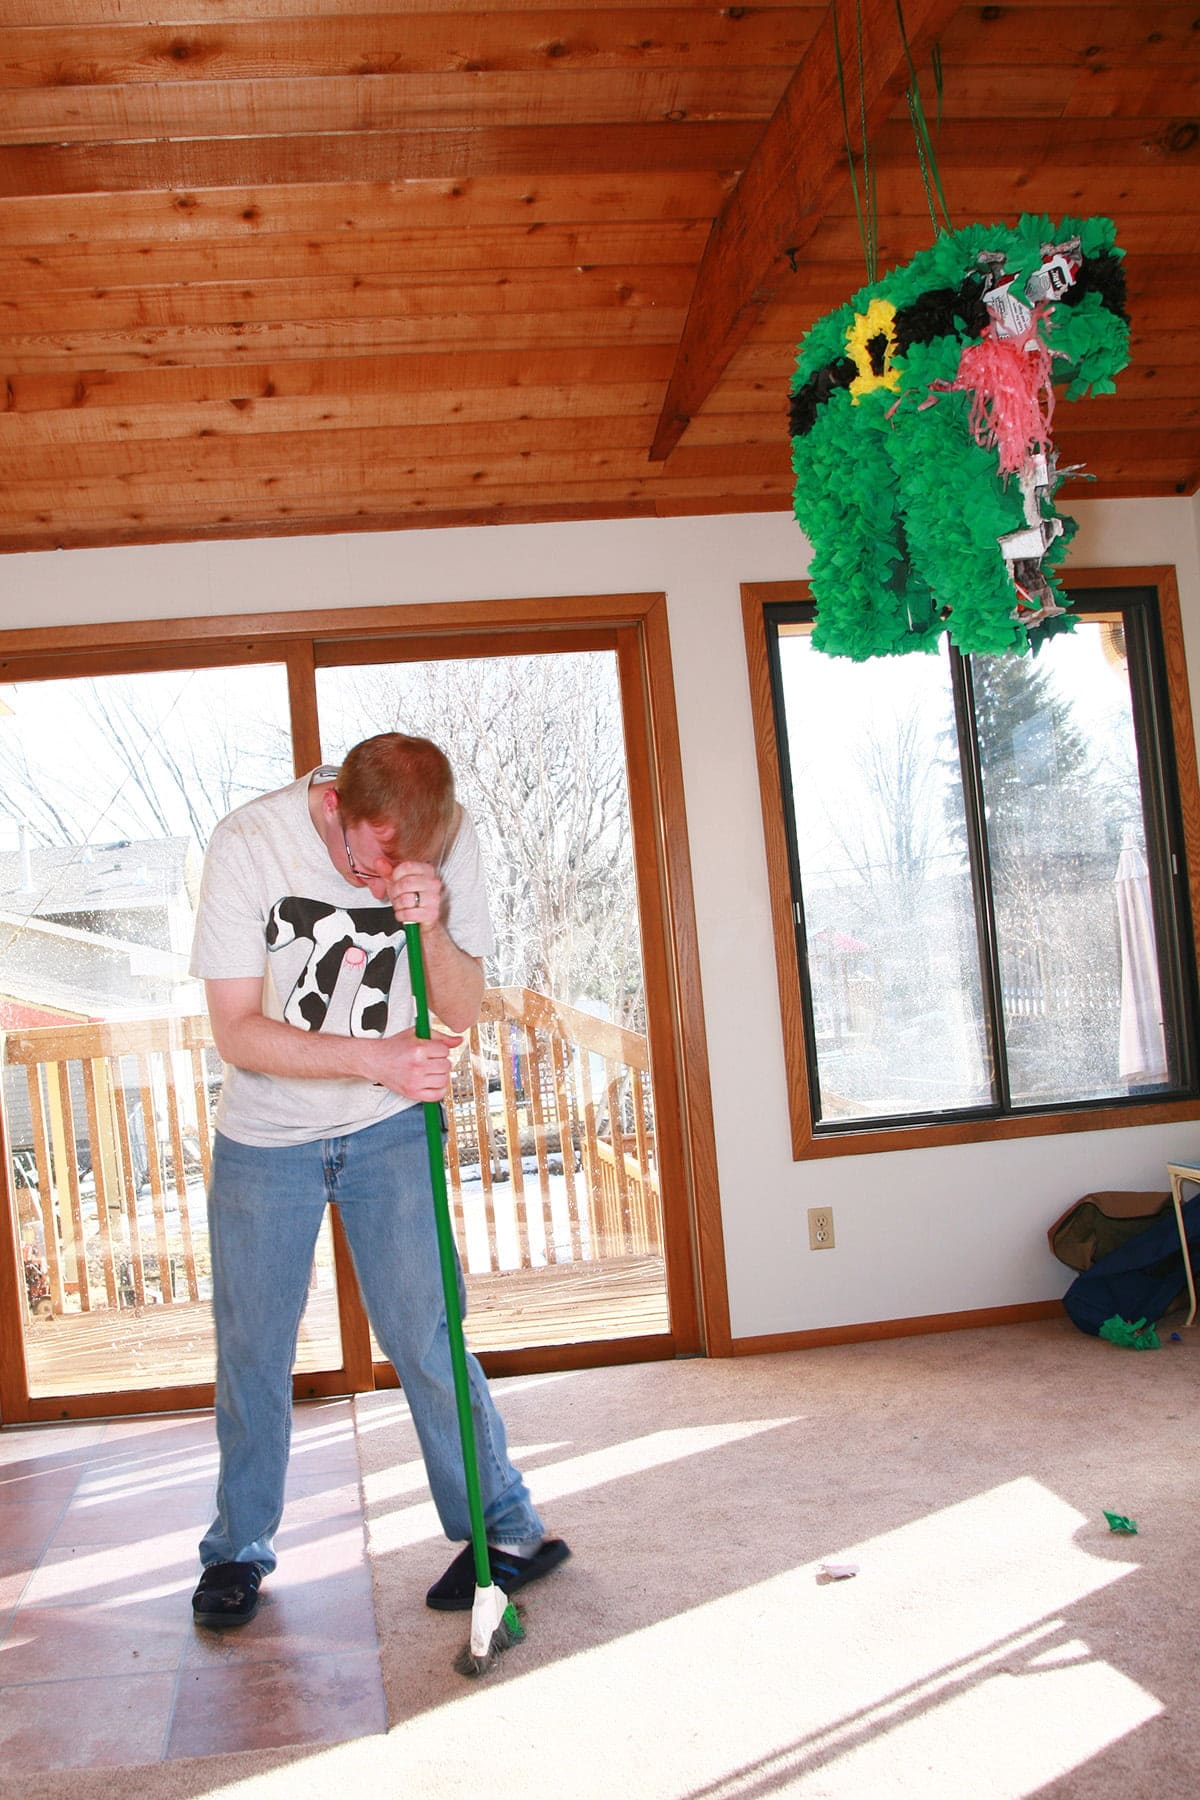 A young blond man wearing a t shirt with a white and black cow print pi symbol on it stoops over a broom, beneath a suspended pinata.